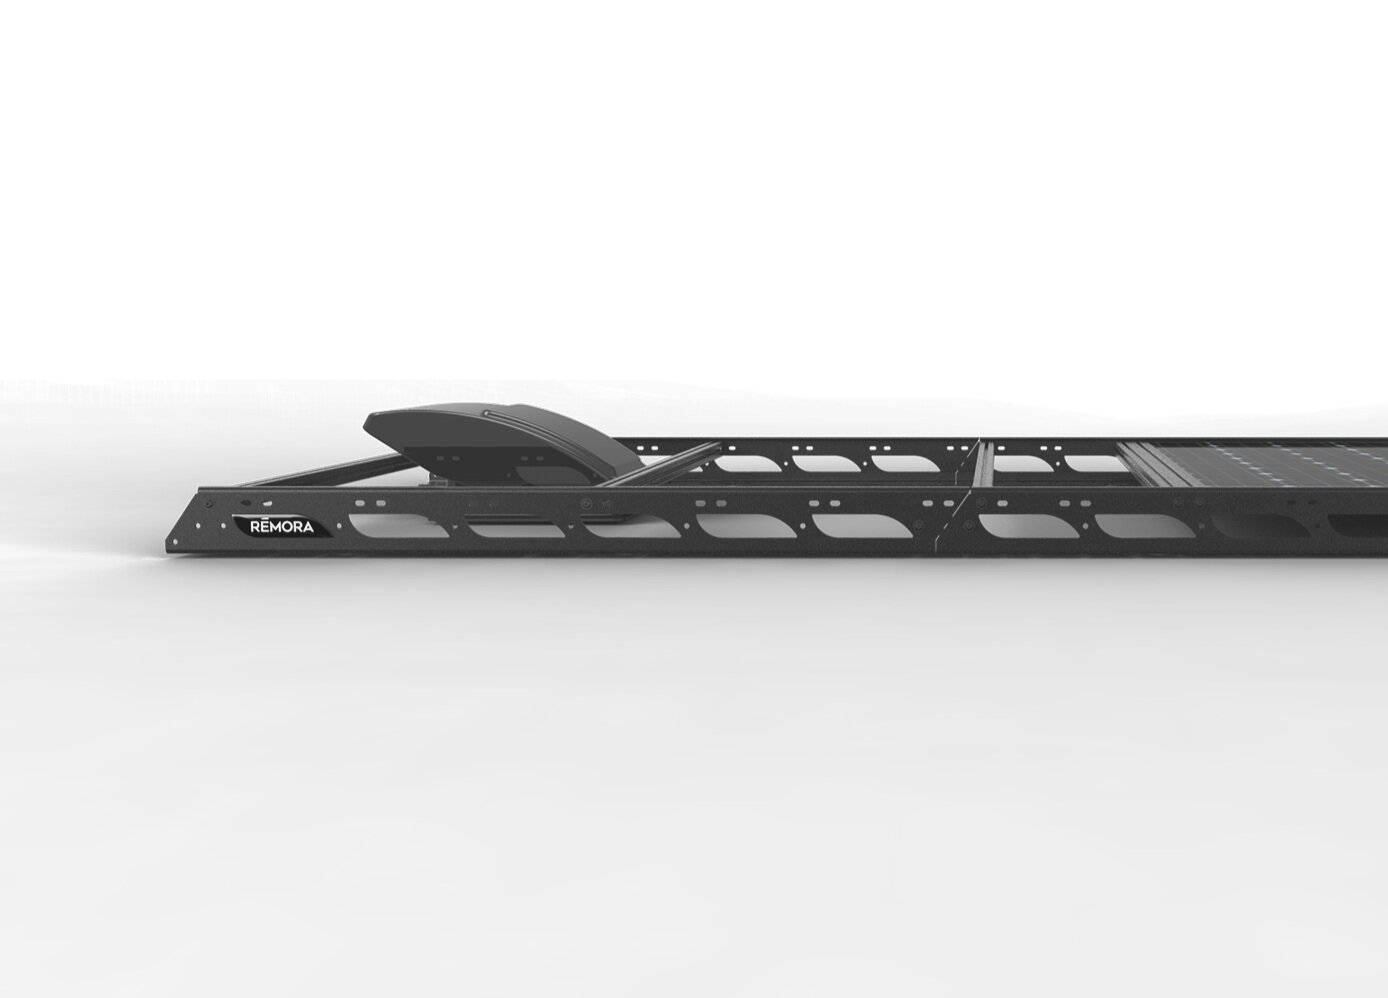 remora co modular roof rack ram promaster 136 high roof remora co